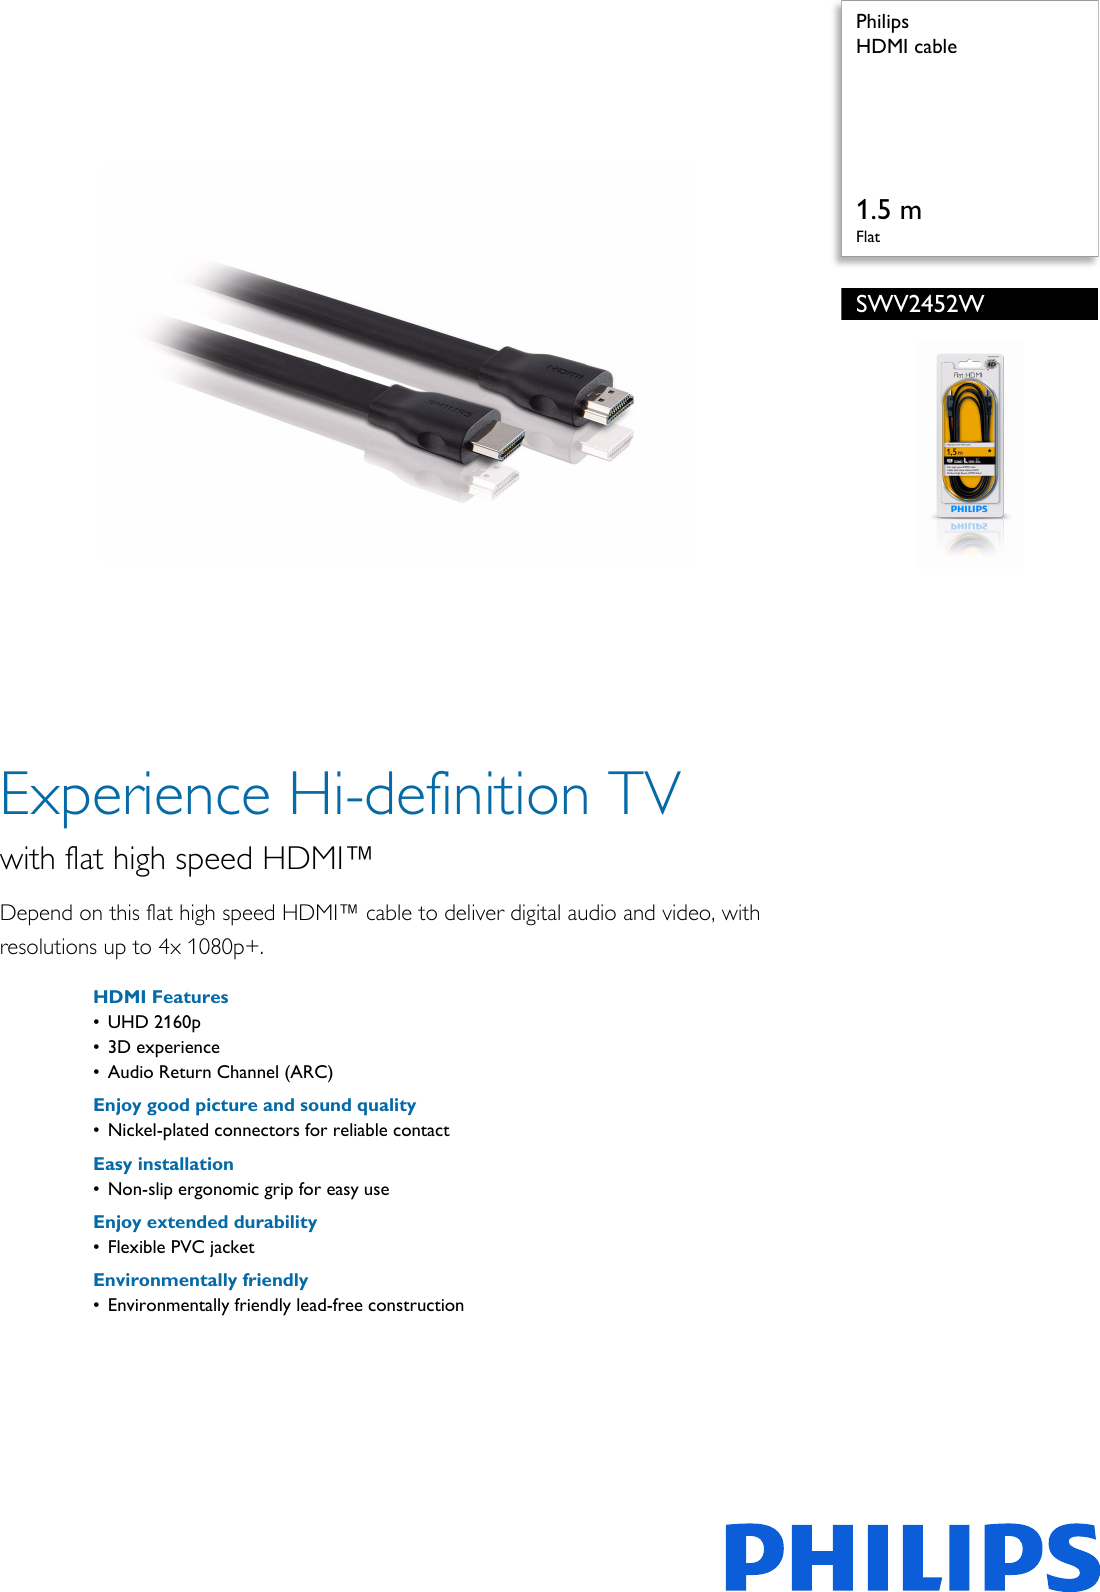 philips swv2452w 10 hdmi cable user manual leaflet swv2452w 10 pss engie rh usermanual wiki Philips TV Troubleshooting Philips TV Problems